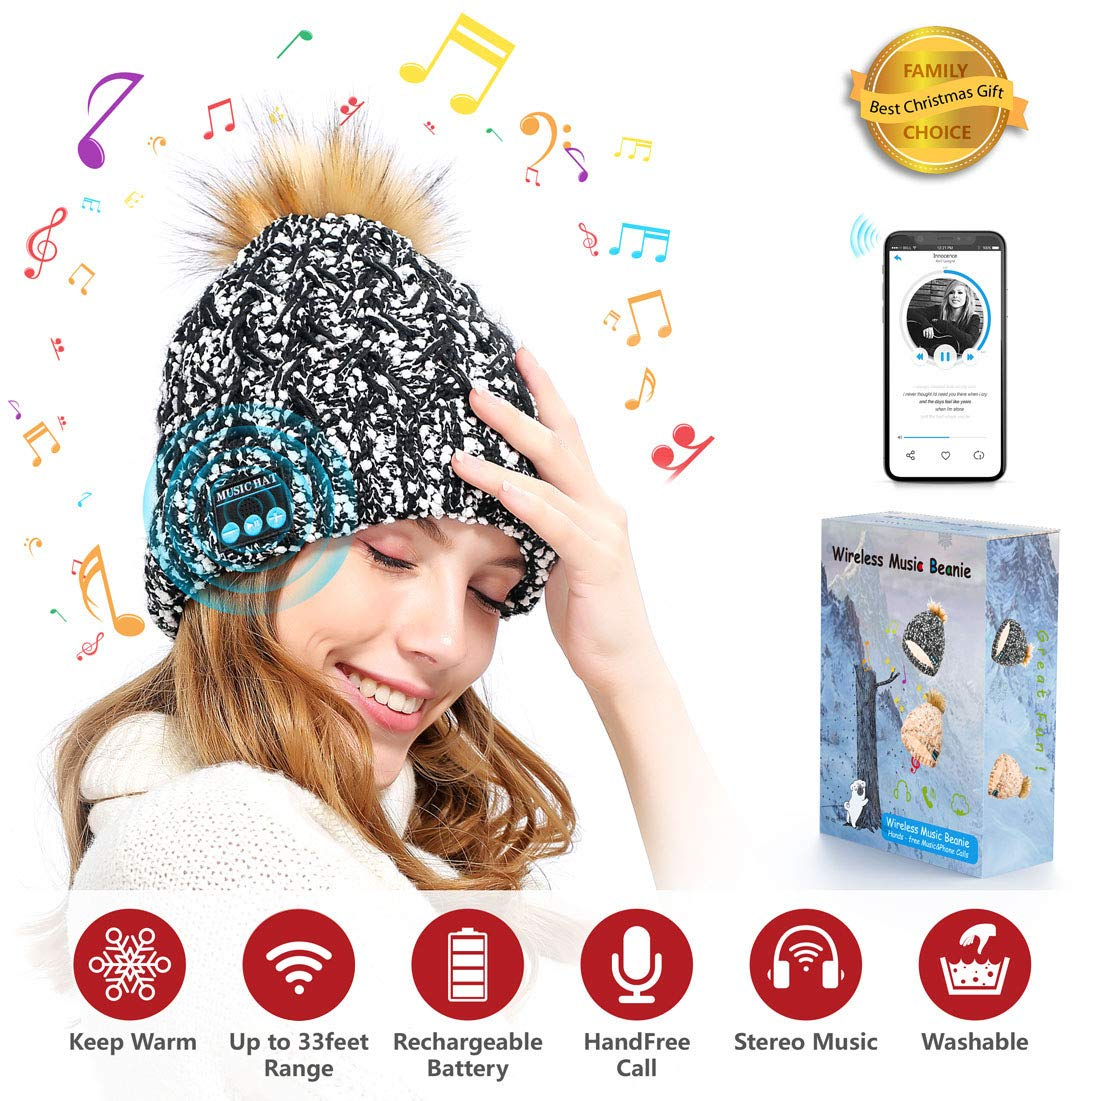 Wireless Bluetooth Beanie Hat, DigiHero Bluetooth Headphones Music Cap Wireless Headset Earphones Bluetooth 4.2 Built-in Microphone Stereo Speaker 4-6 Hour Playtime Easy-Pair for Winter & Christmas